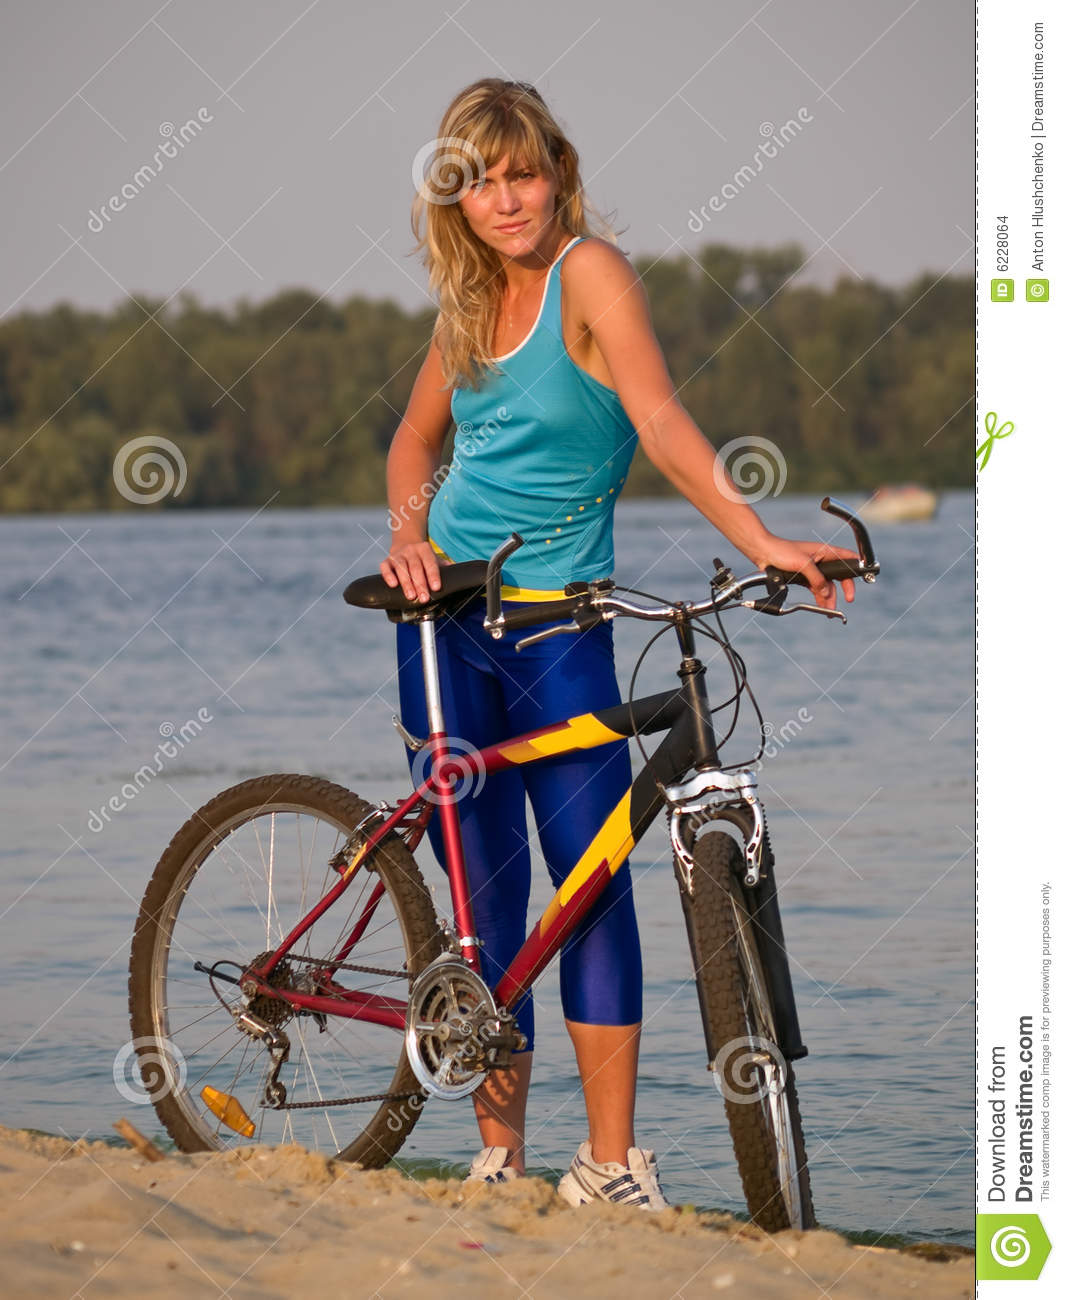 More similar stock images of ` Female cyclist posing outdoors `